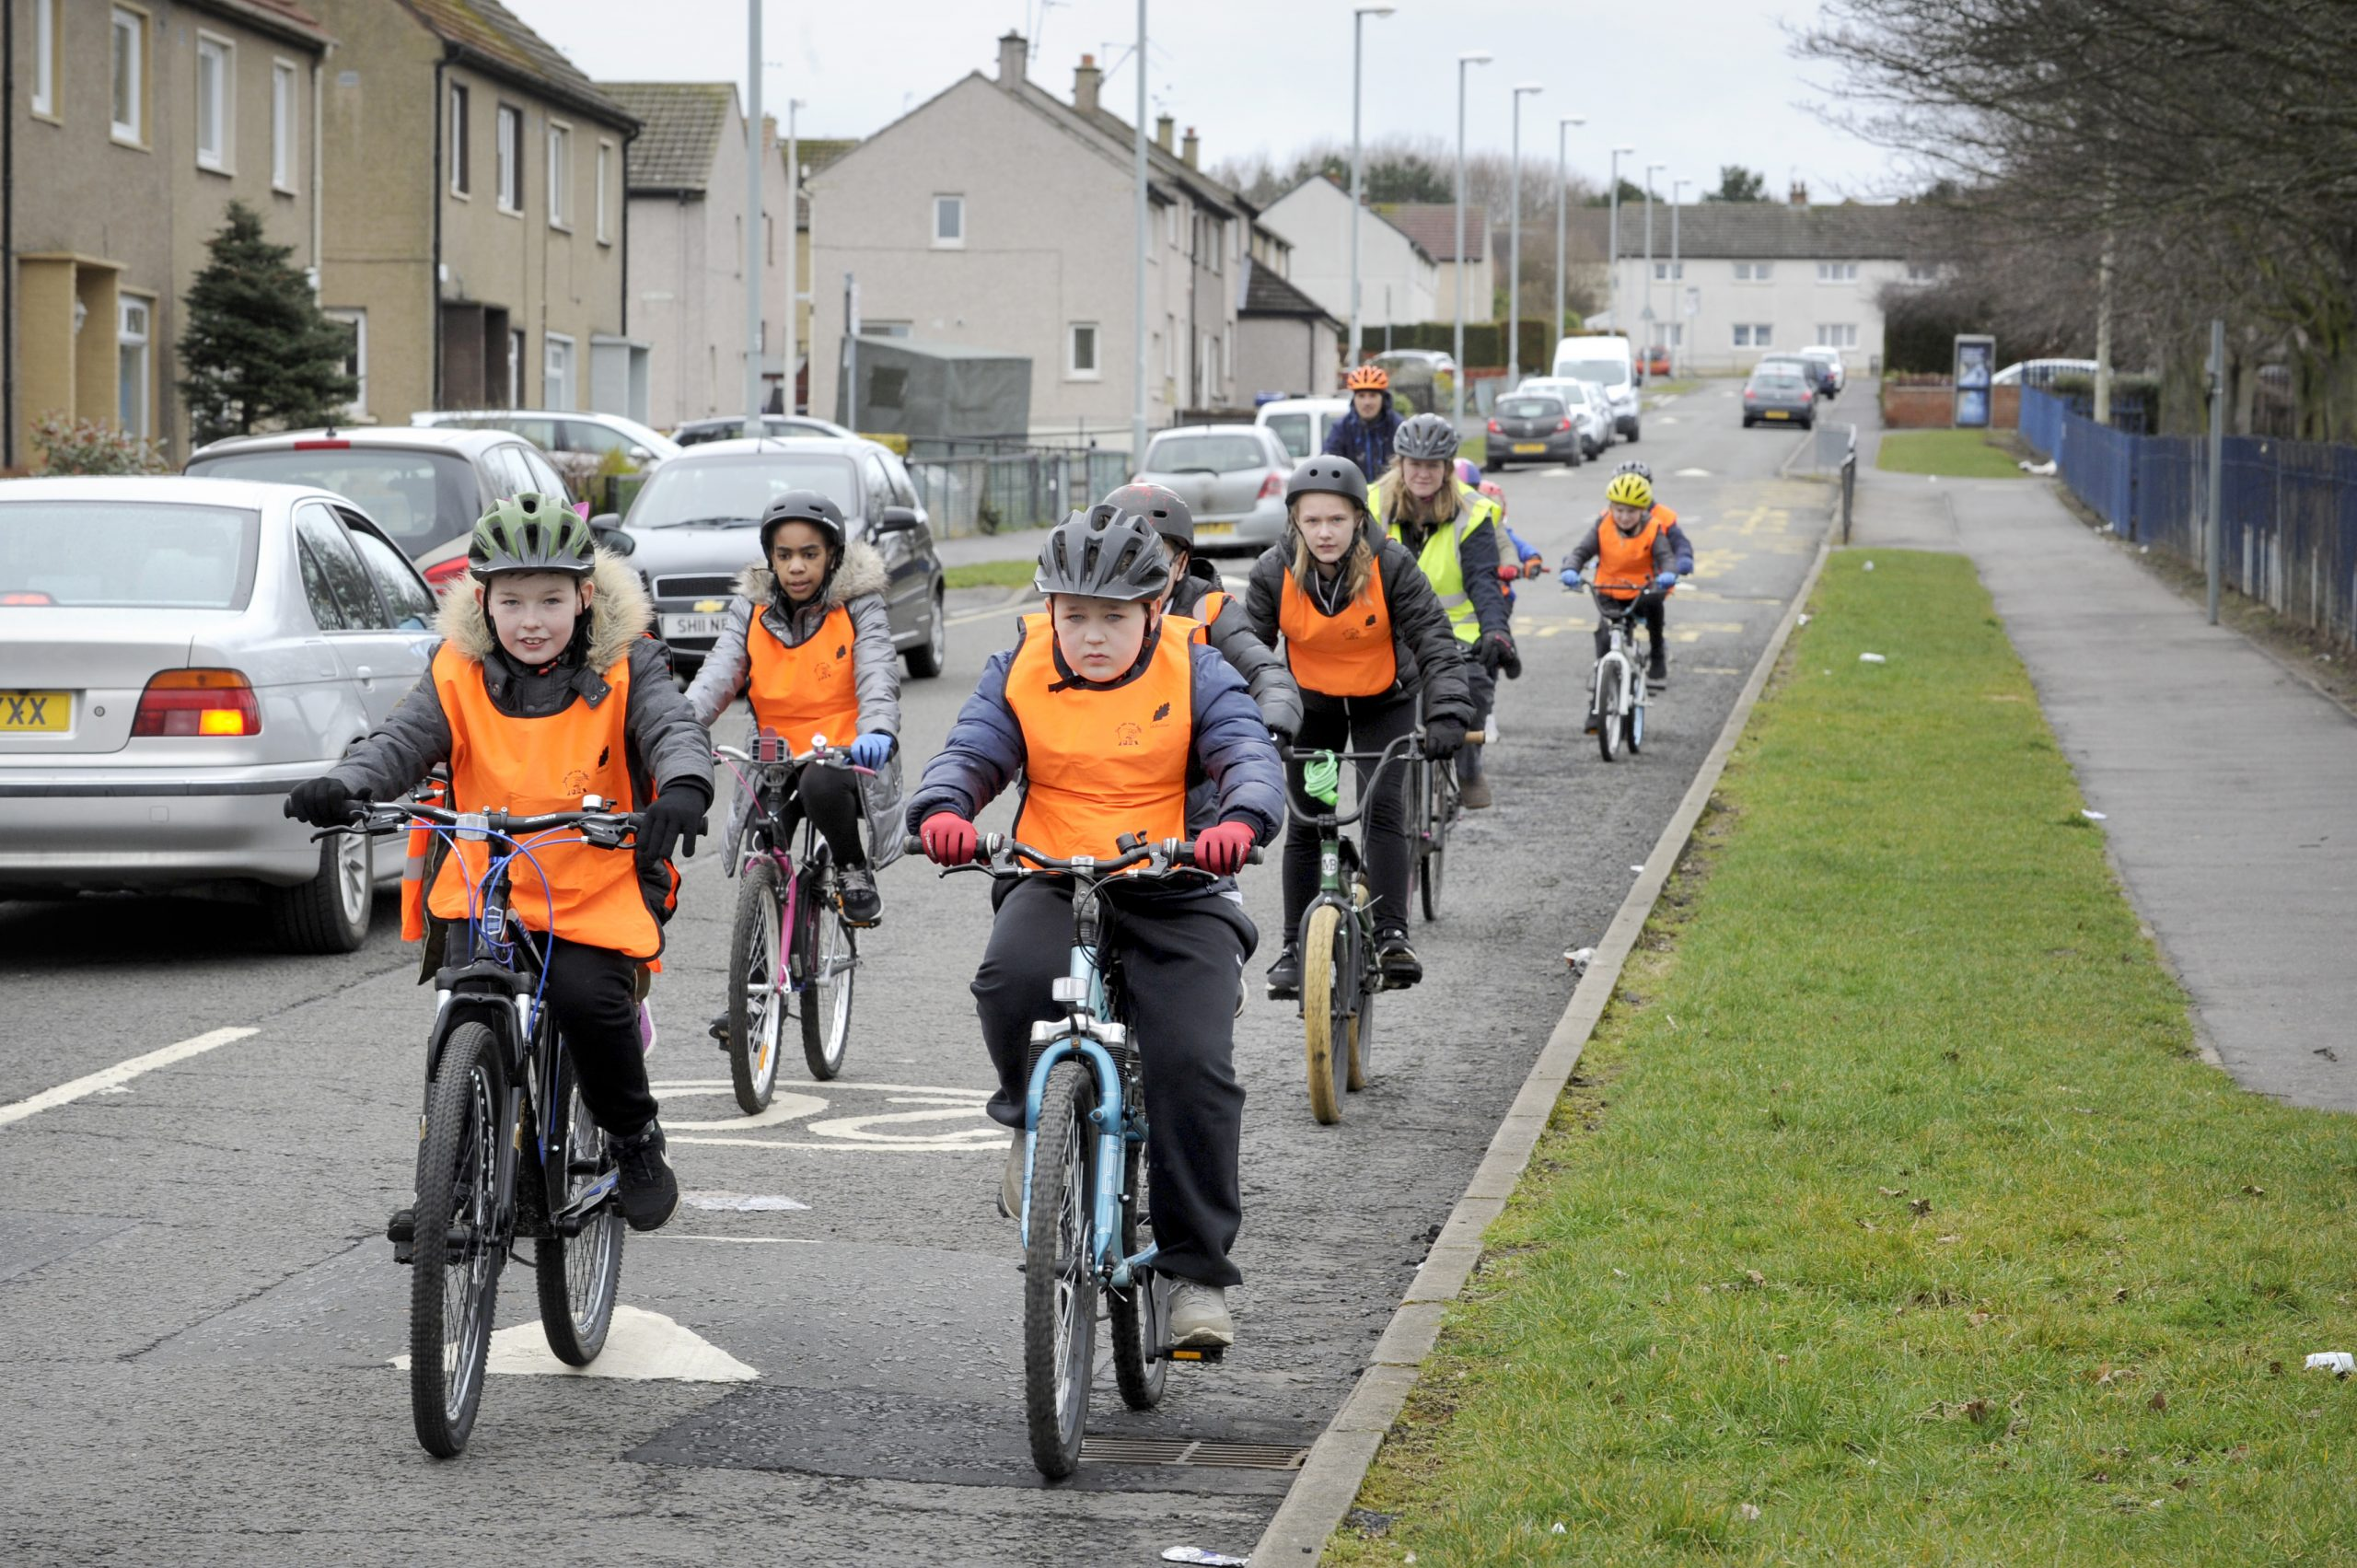 Led ride with Danderhall Primary along the newly constructed Loanhead Path Extension route